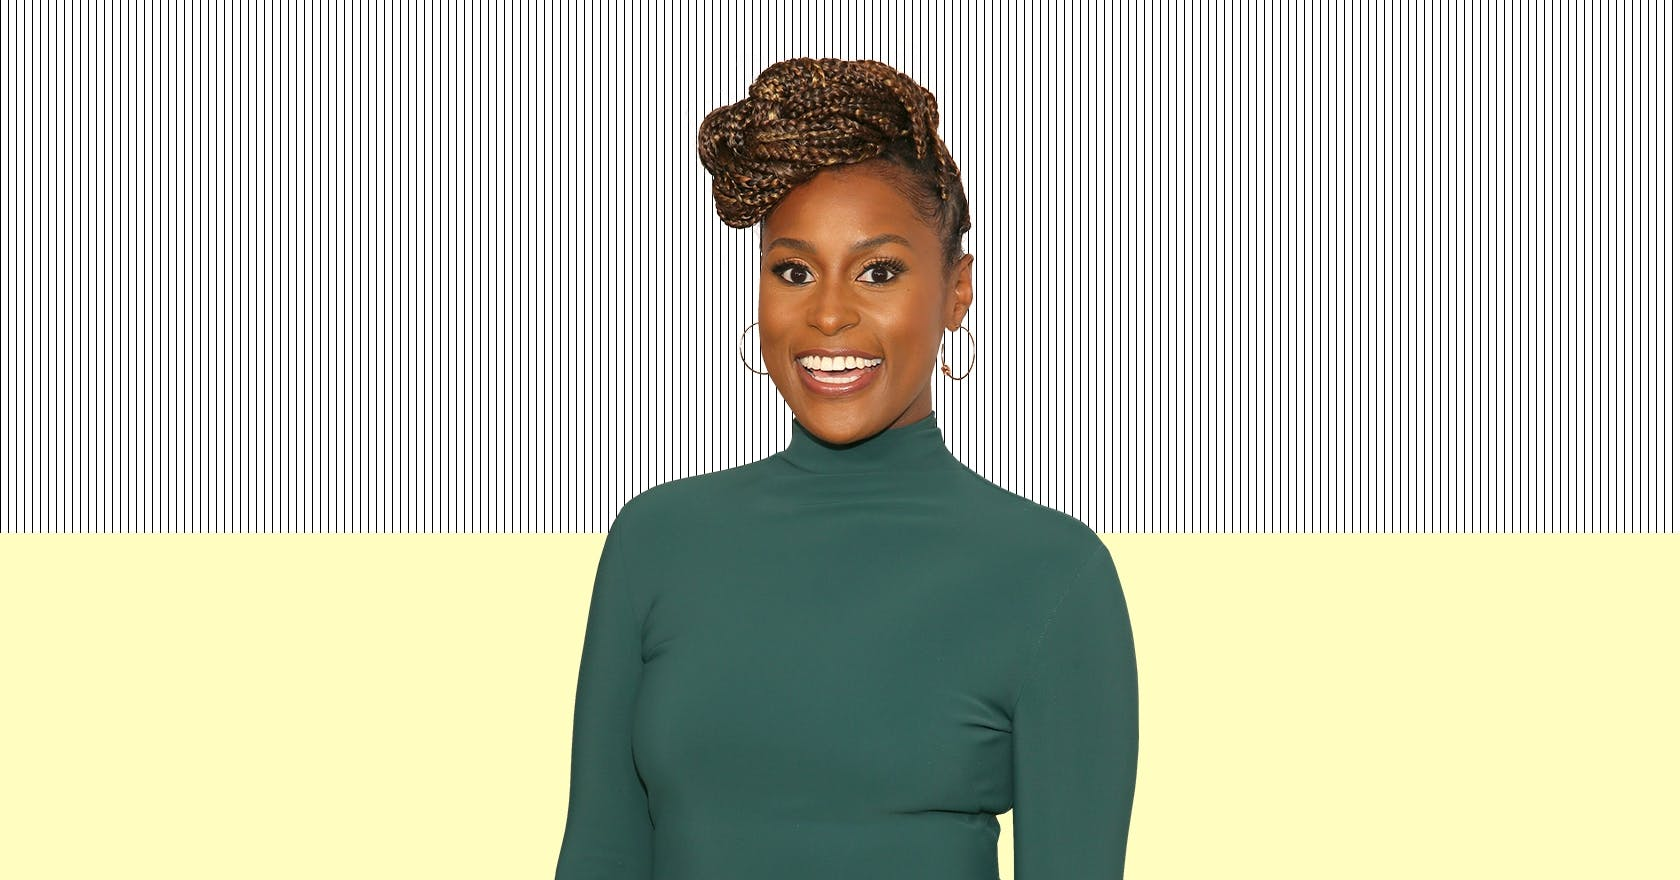 Issa Rae just perfectly summed up why interracial romcoms are so important